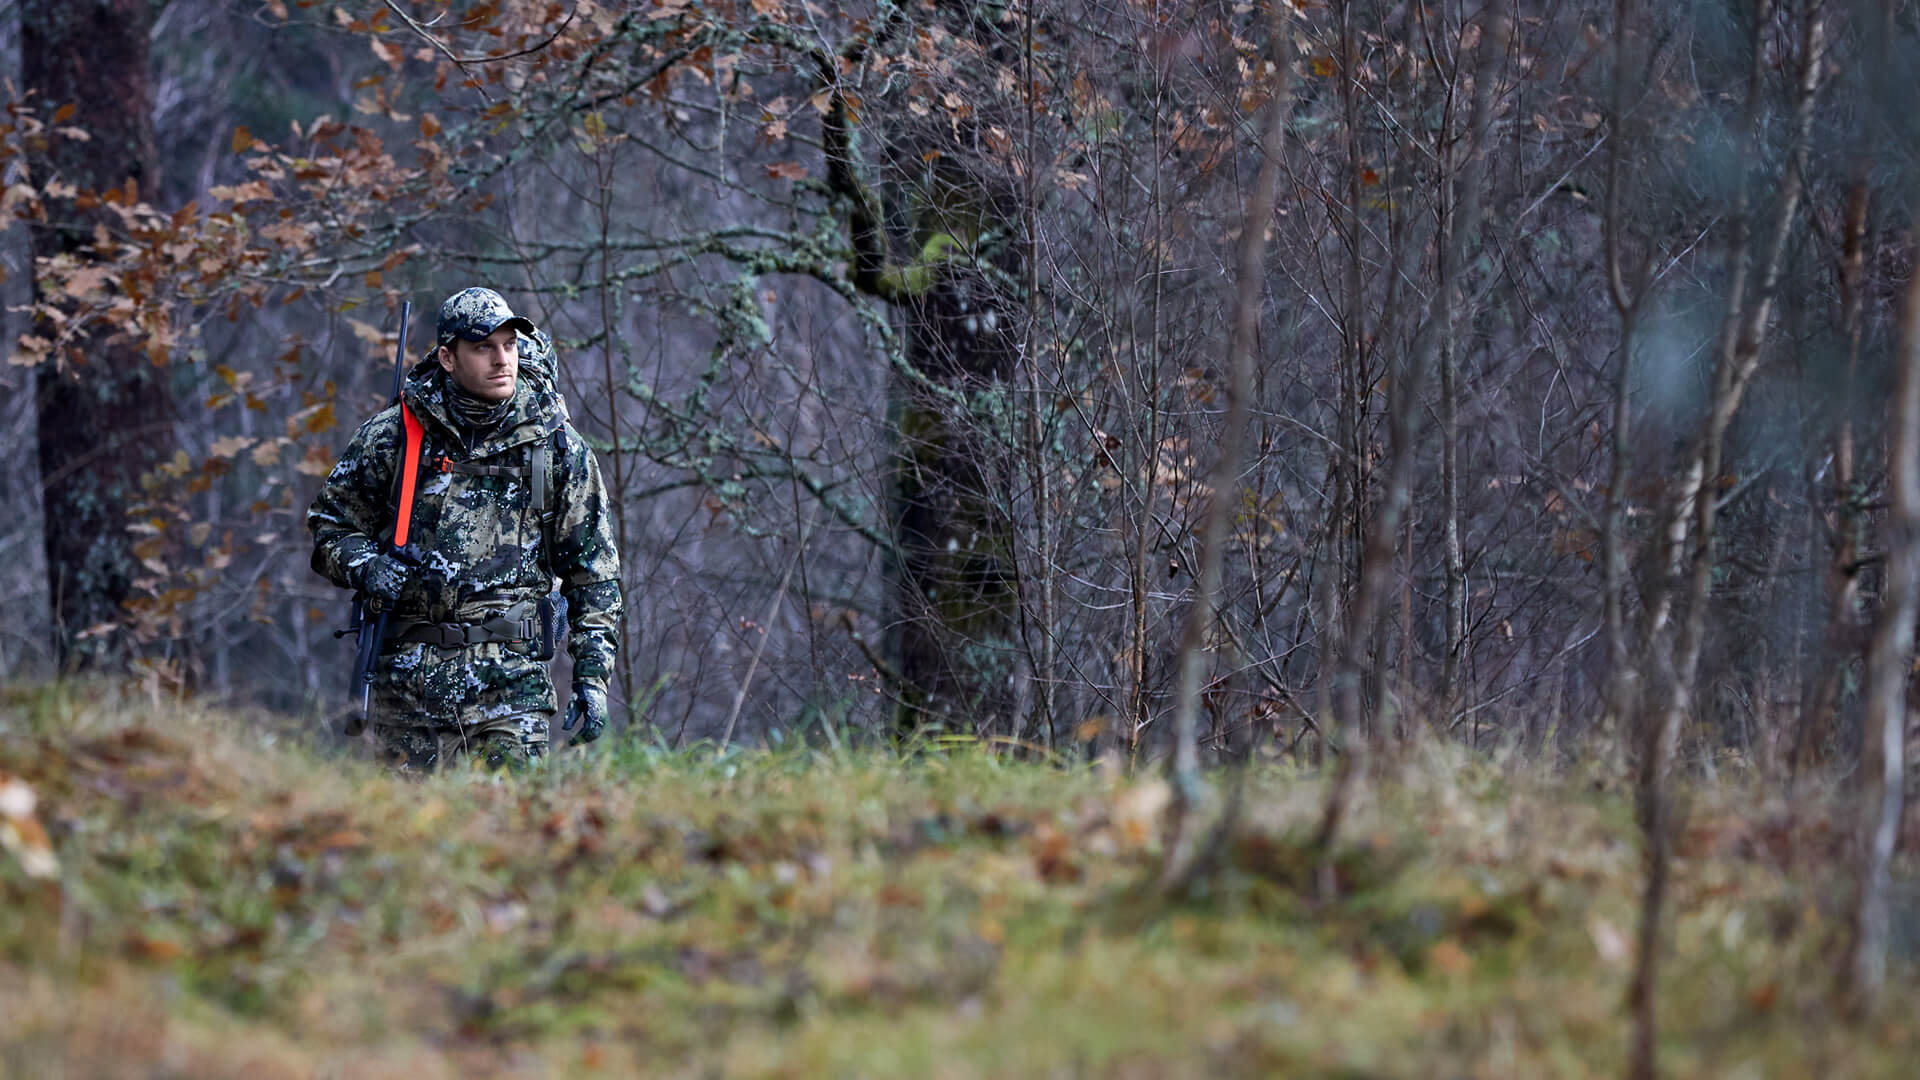 Hunter in DESOLVE® camouflage clothing